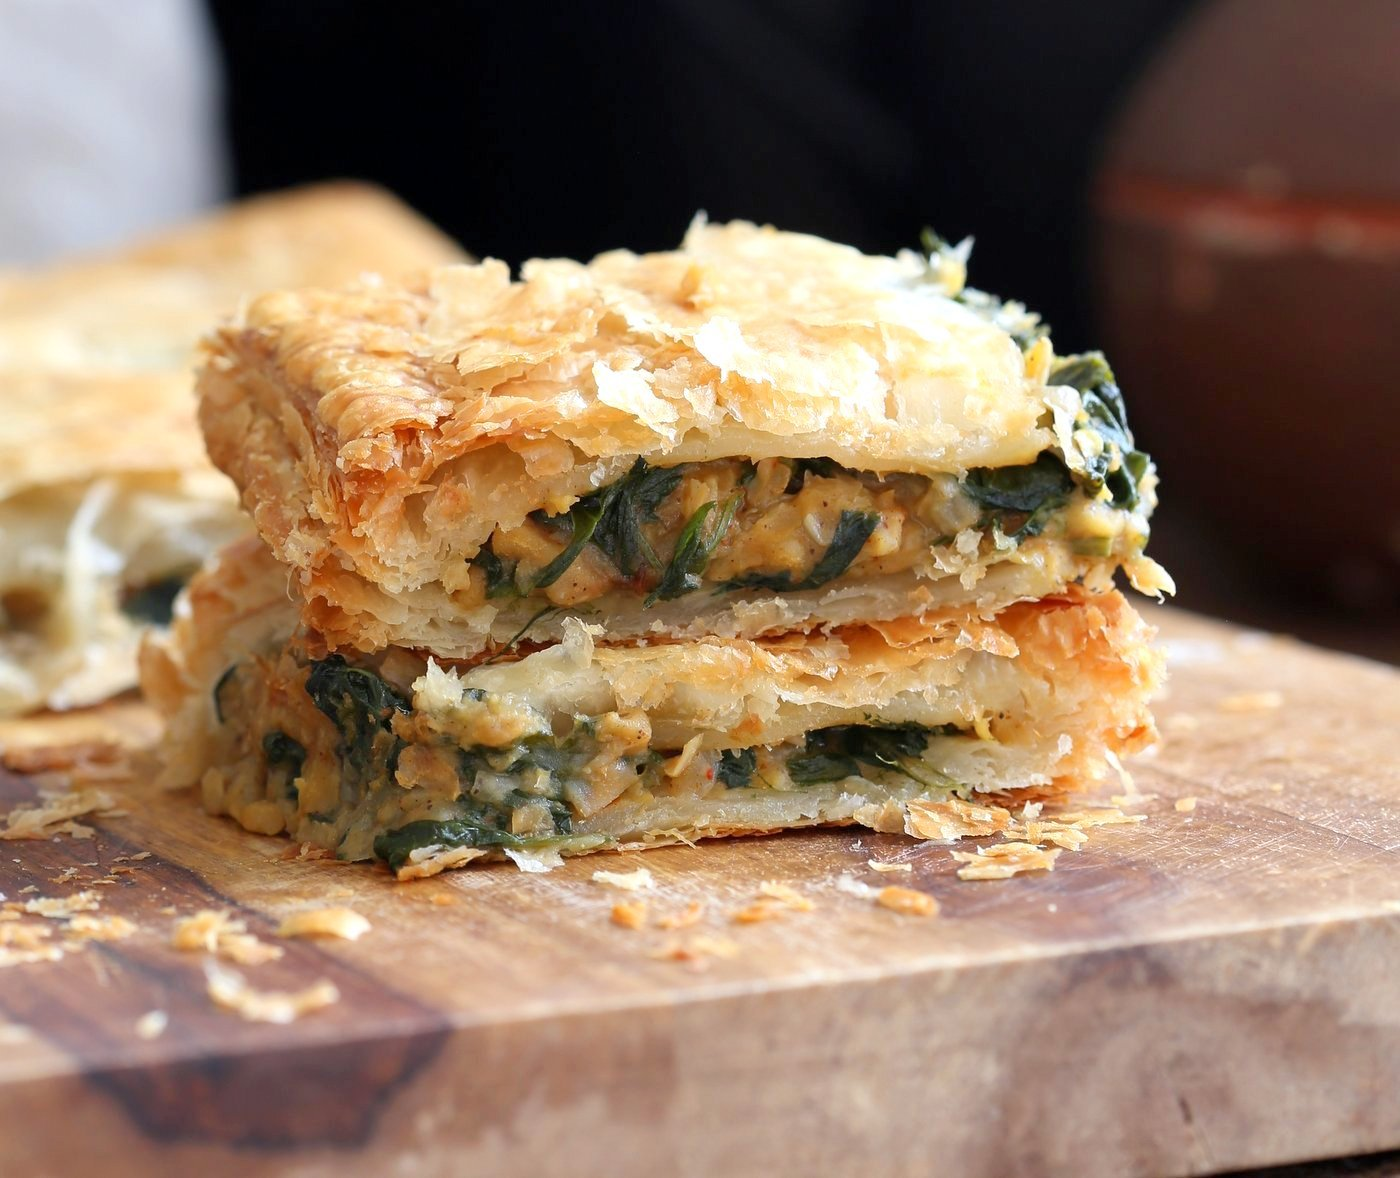 Chickpea Spinach Pie with Berbere Spice. Easy Chickpea Spinach Pastry for holidays and company with vegan puff pastry. Use spices or blends of choice. Use lentils for variation. Vegan Soy-free Nut-free Recipe. | VeganRicha.com